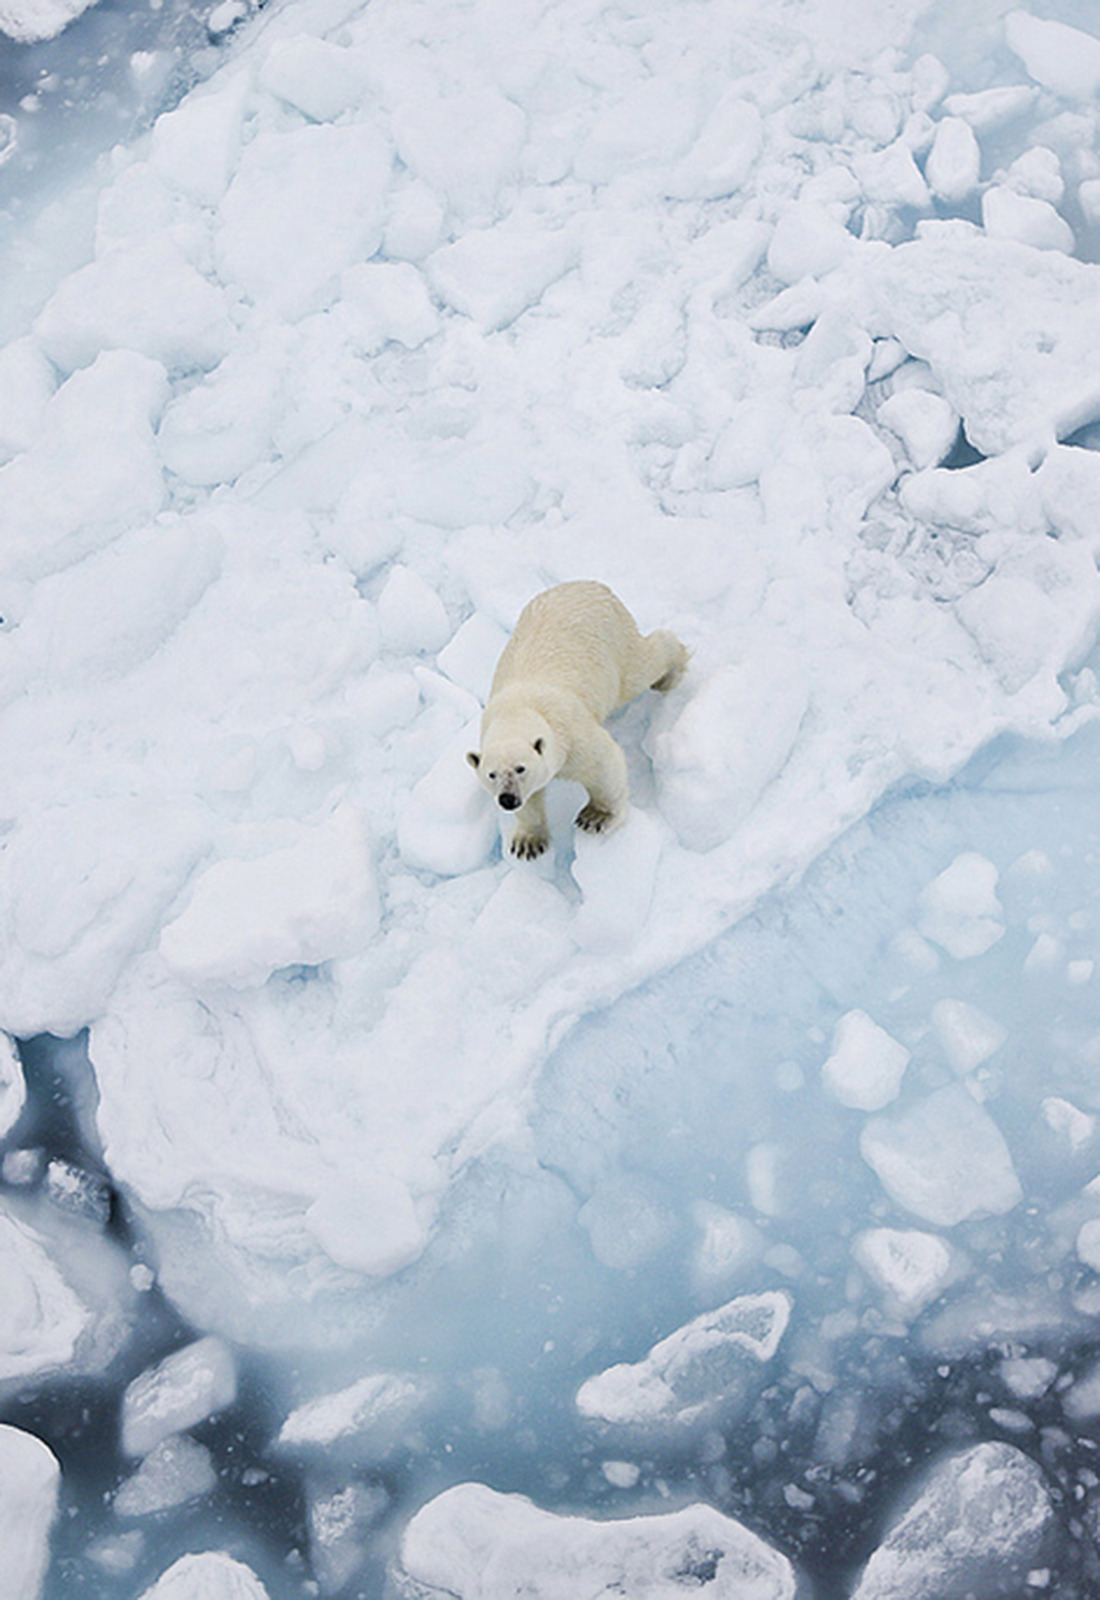 mystic-revelations:  polar bear on ice By pilapix